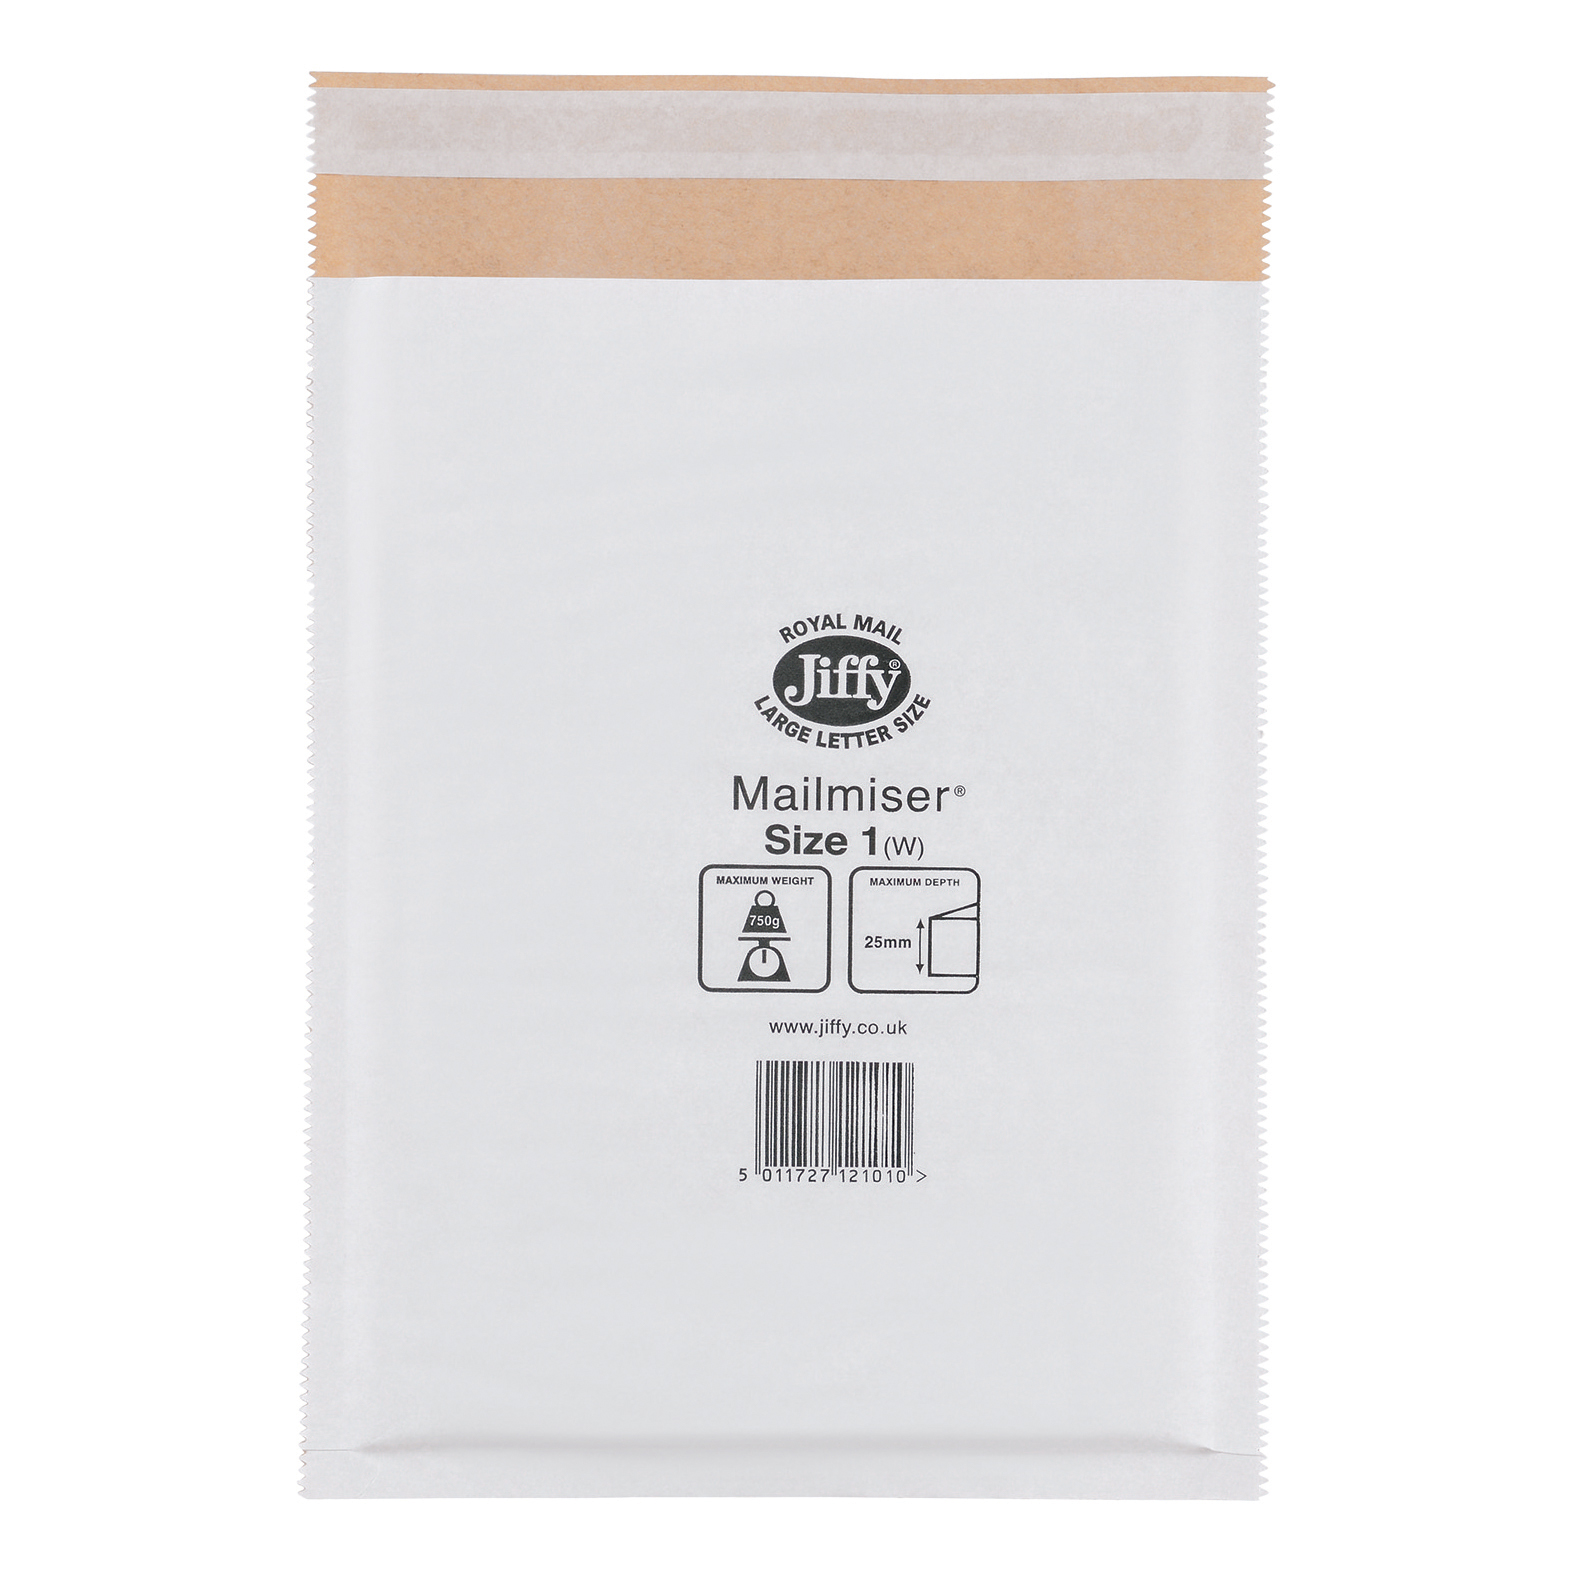 Padded Bags & Envelopes Jiffy Mailmiser Protective Envelopes Bubble-lined Size 1 P&S 170x245mm White Ref JMM-WH-1 Pack 100